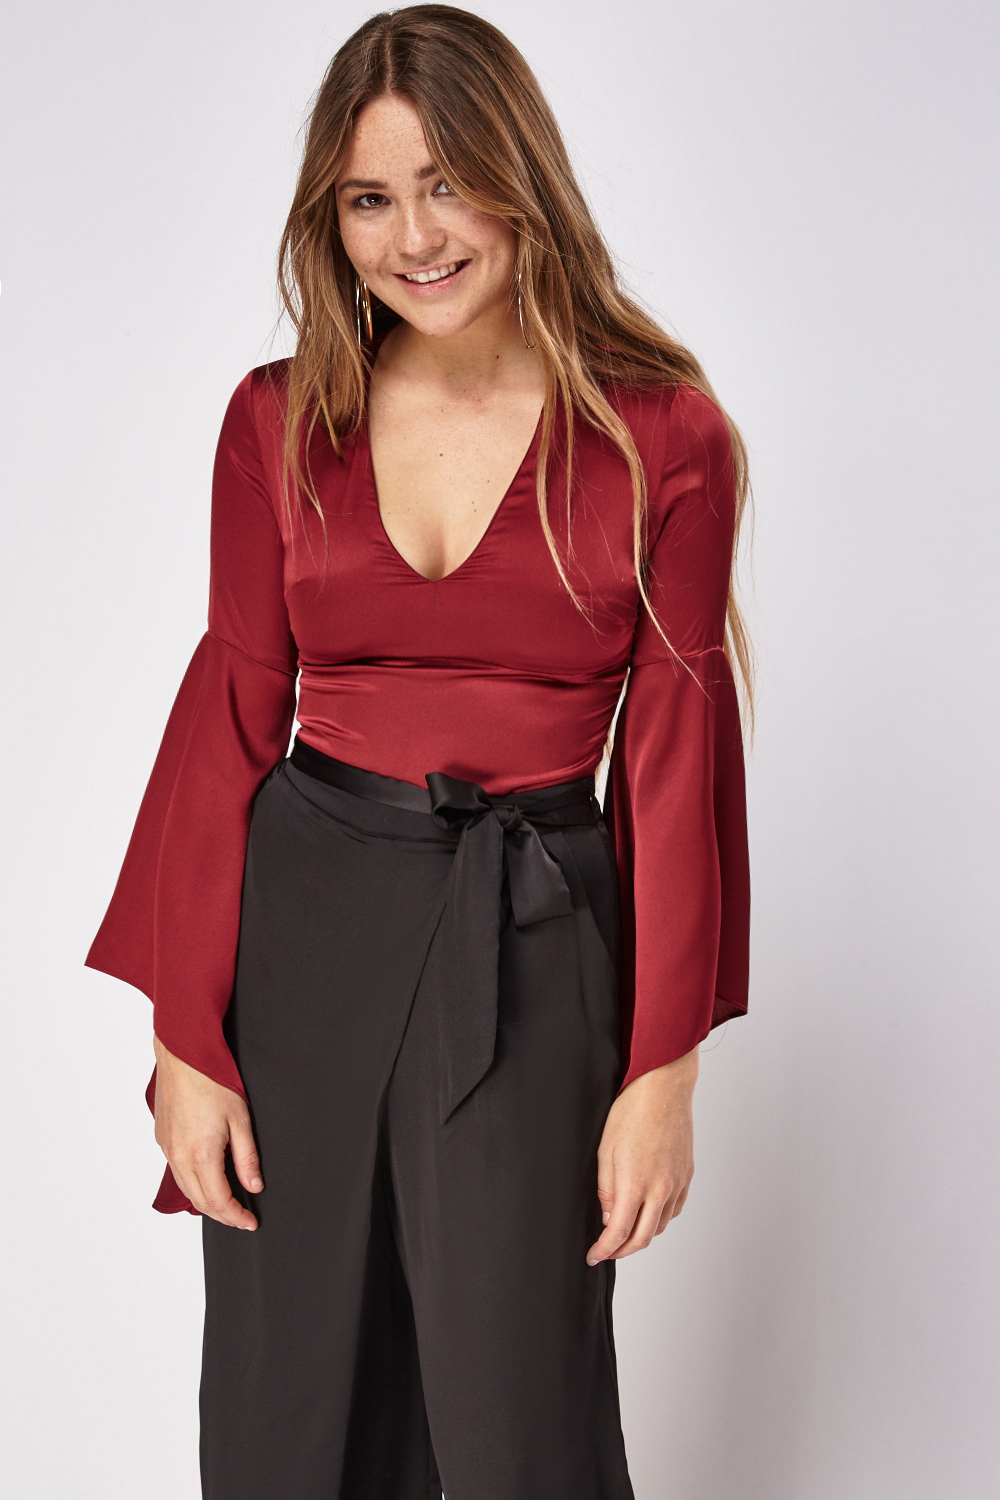 93530e9420c94 Silky Plunge Flare Sleeve Crop Top - Just £5